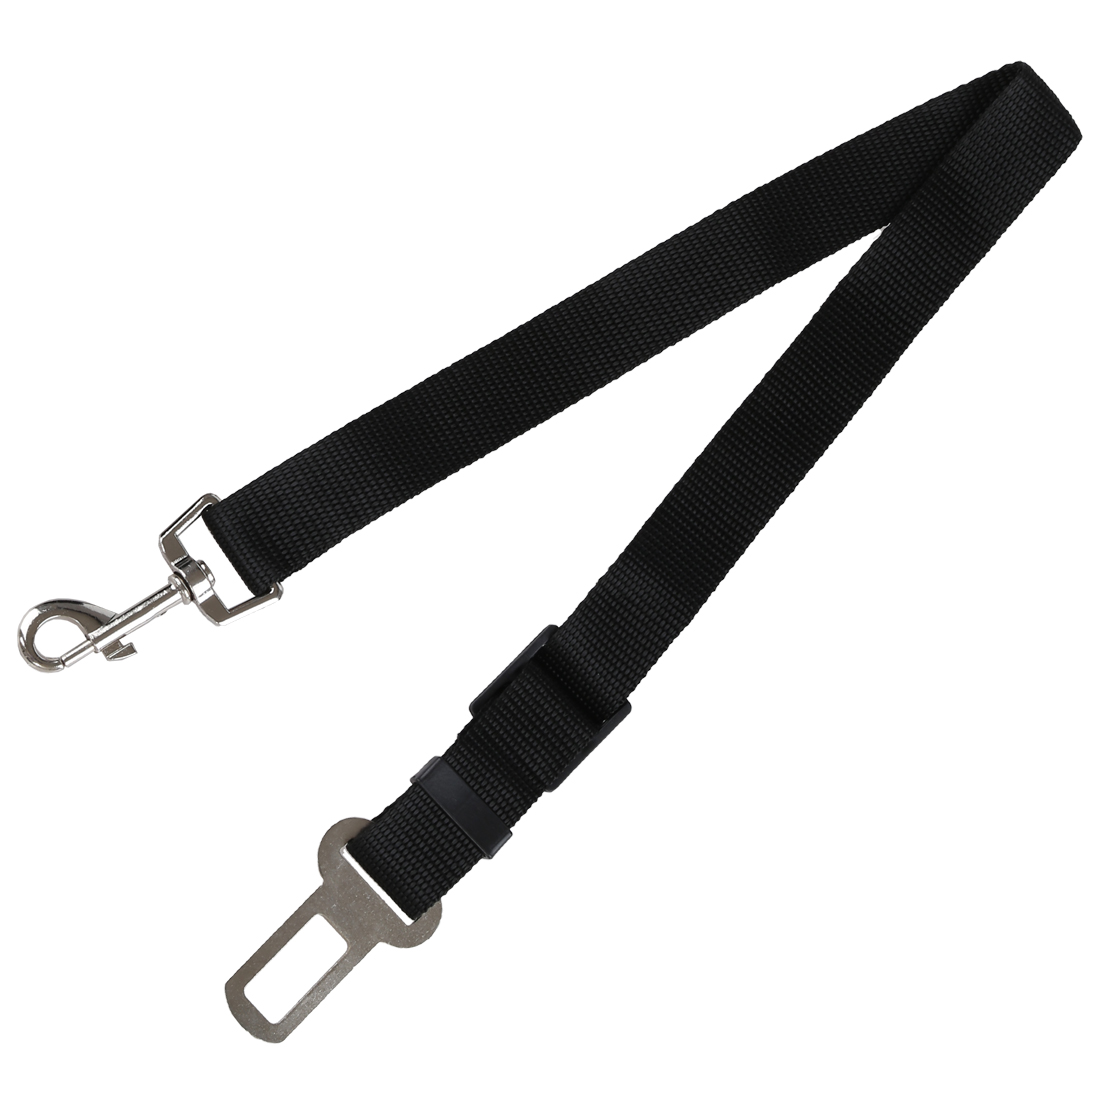 Pet dog car safety chest strap + Pet dog car seat belt - Secure Your Pet While Driving(Black M)